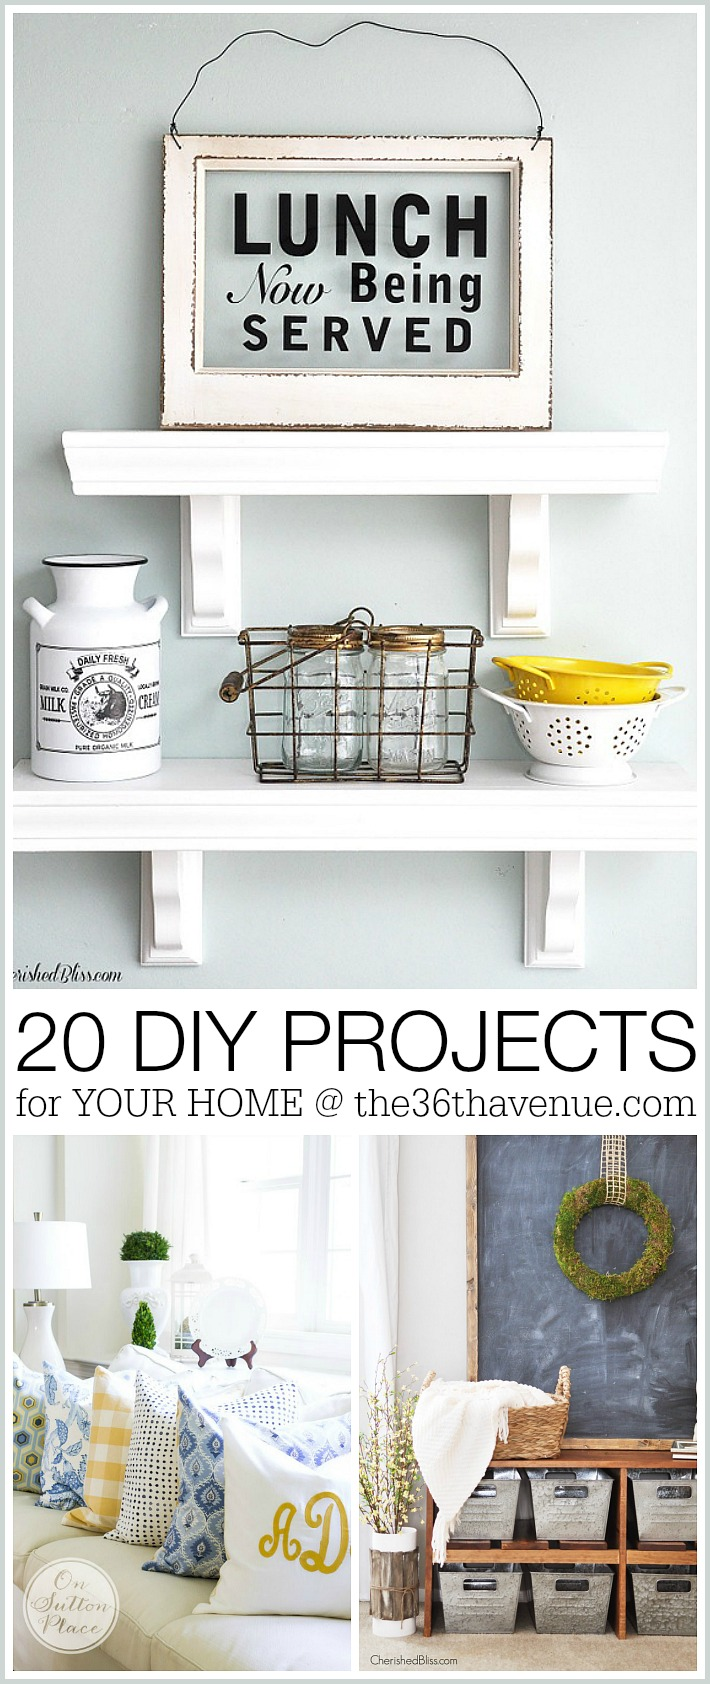 Home decor diy projects the 36th avenue Home design ideas diy